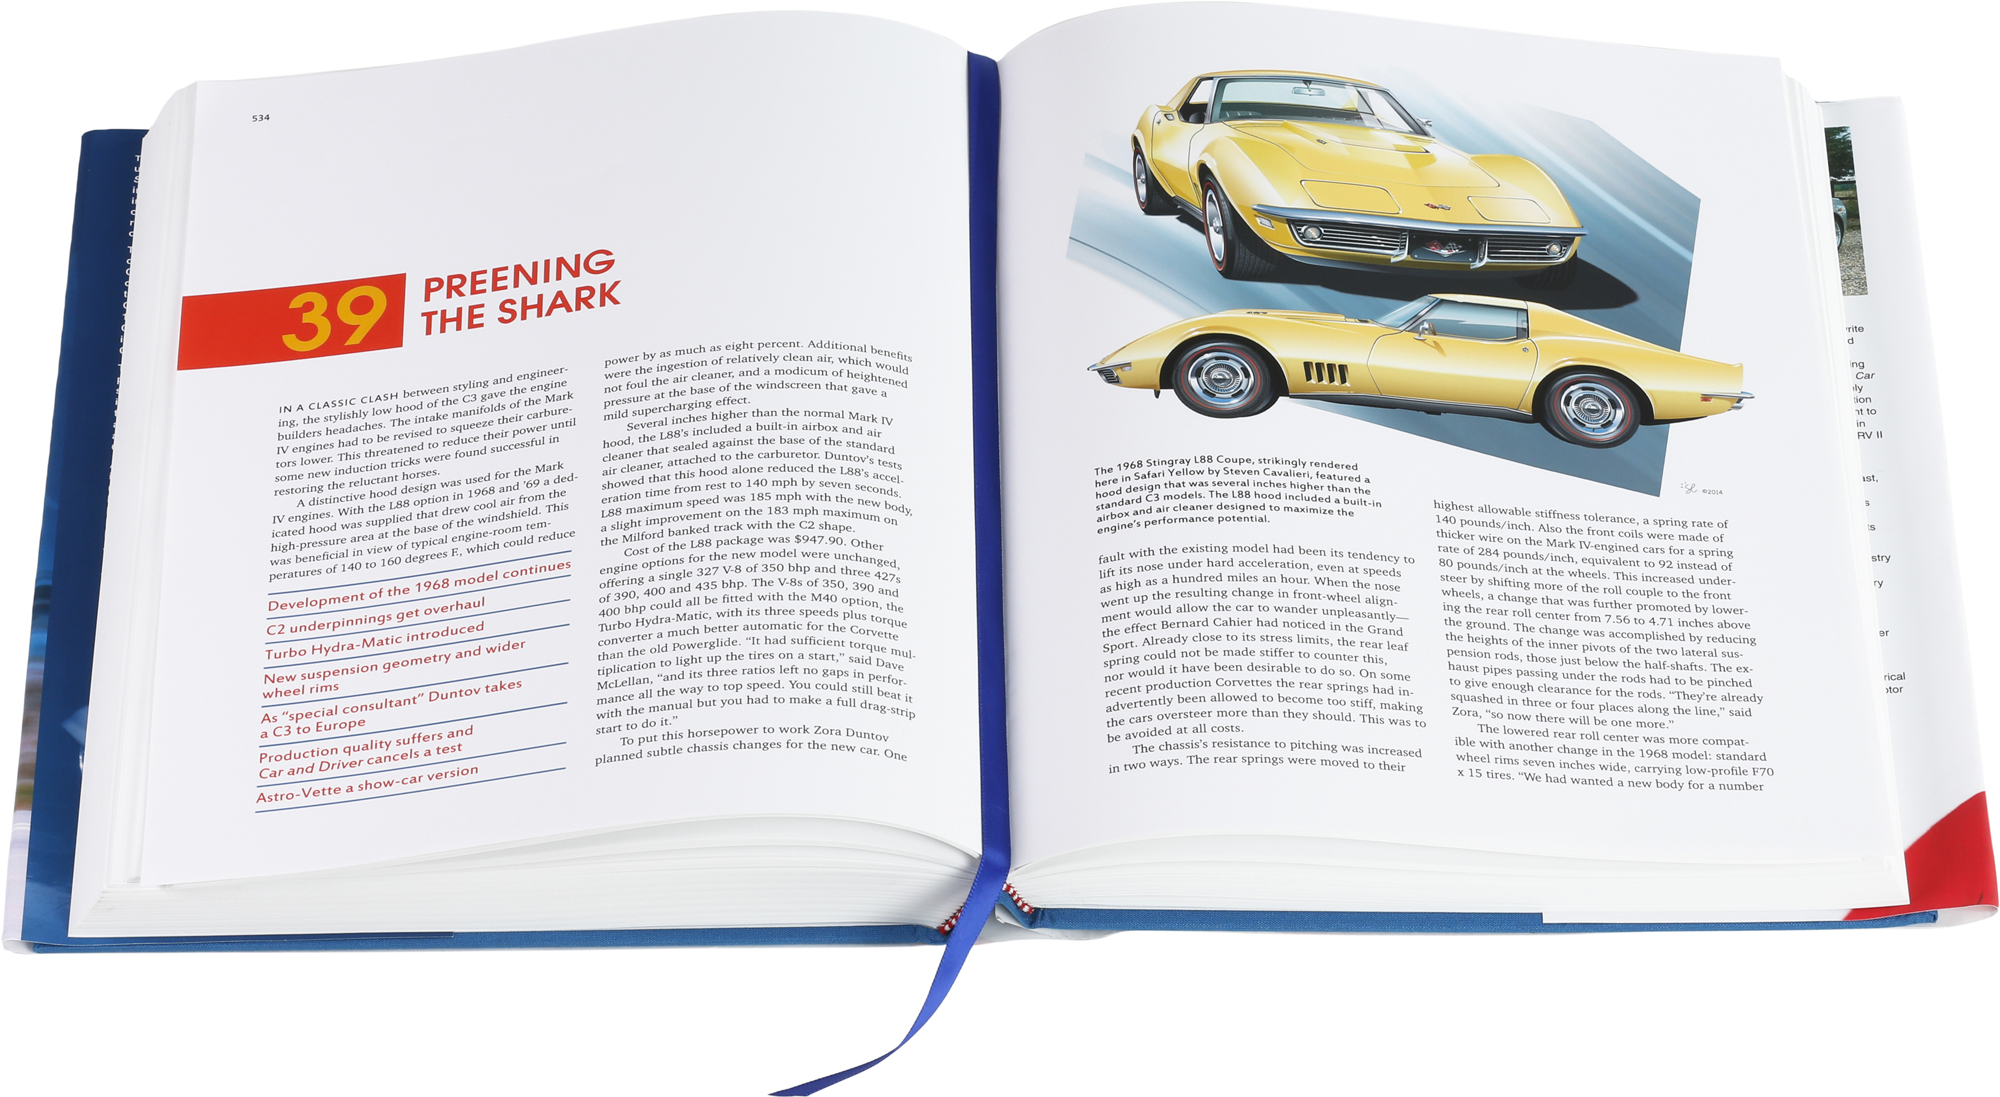 Sample page spread from Corvette - America's Star-Spangled Sports Car.